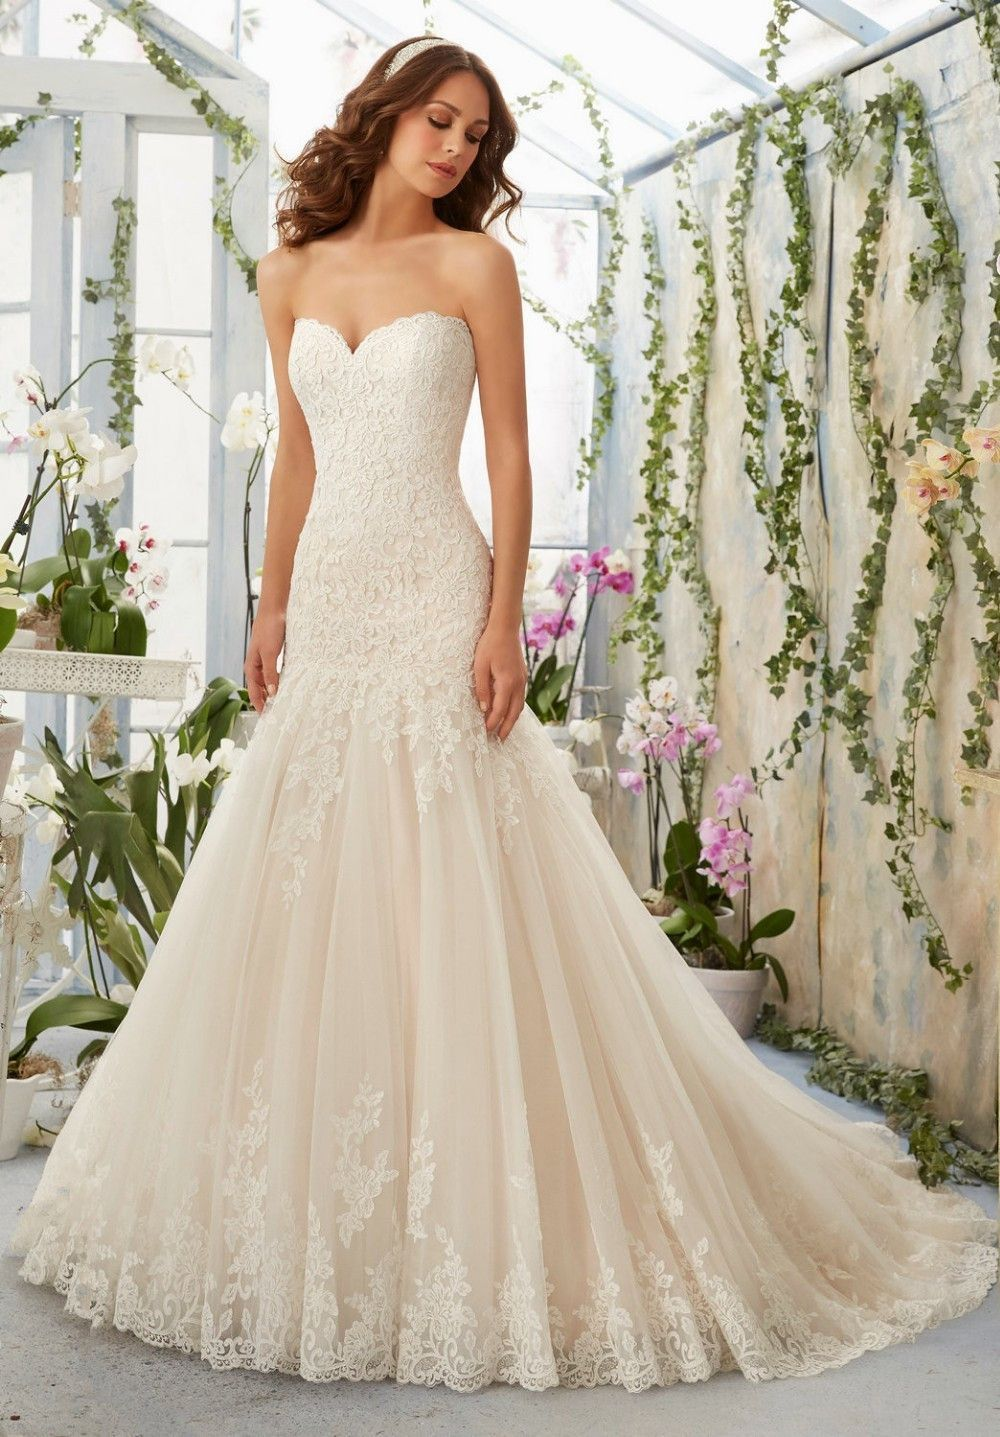 Strapless Tulle Wedding Gown with Dropped Waist Bodice Adorned with ...